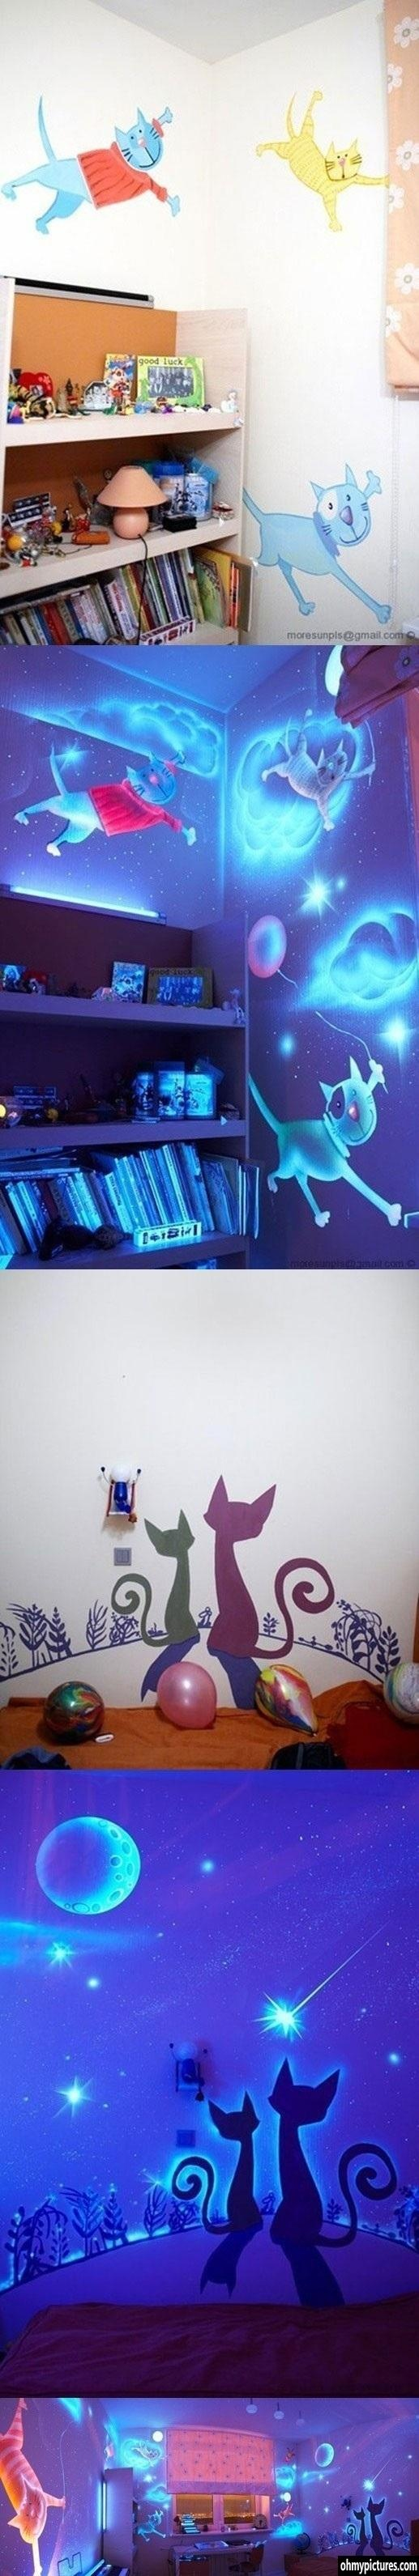 Fun with blacklight paint in the kids' room. This looks *so* cool!!